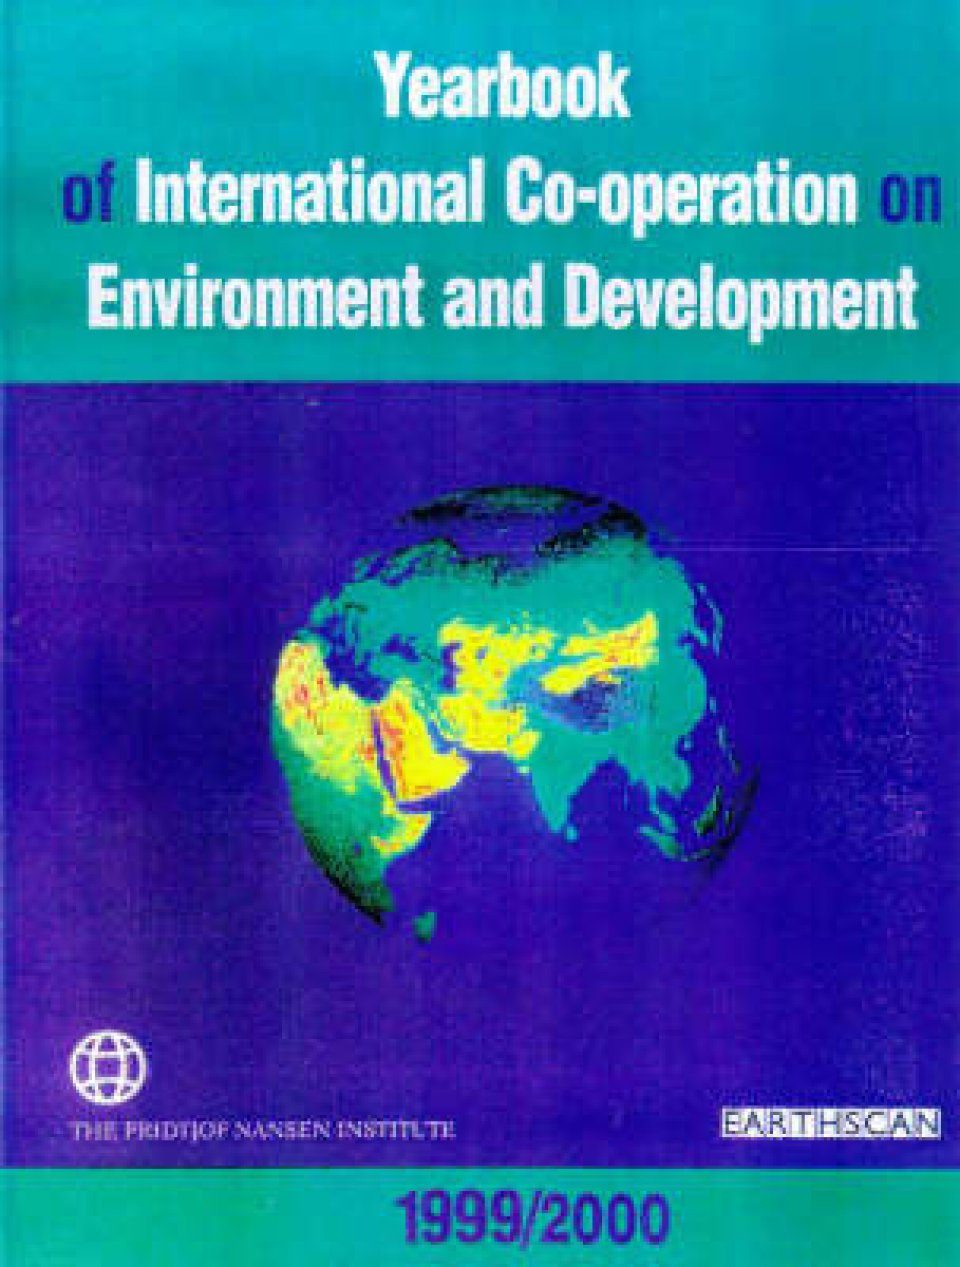 Yearbook of International Co-operation on Environment and Development 1999/2000